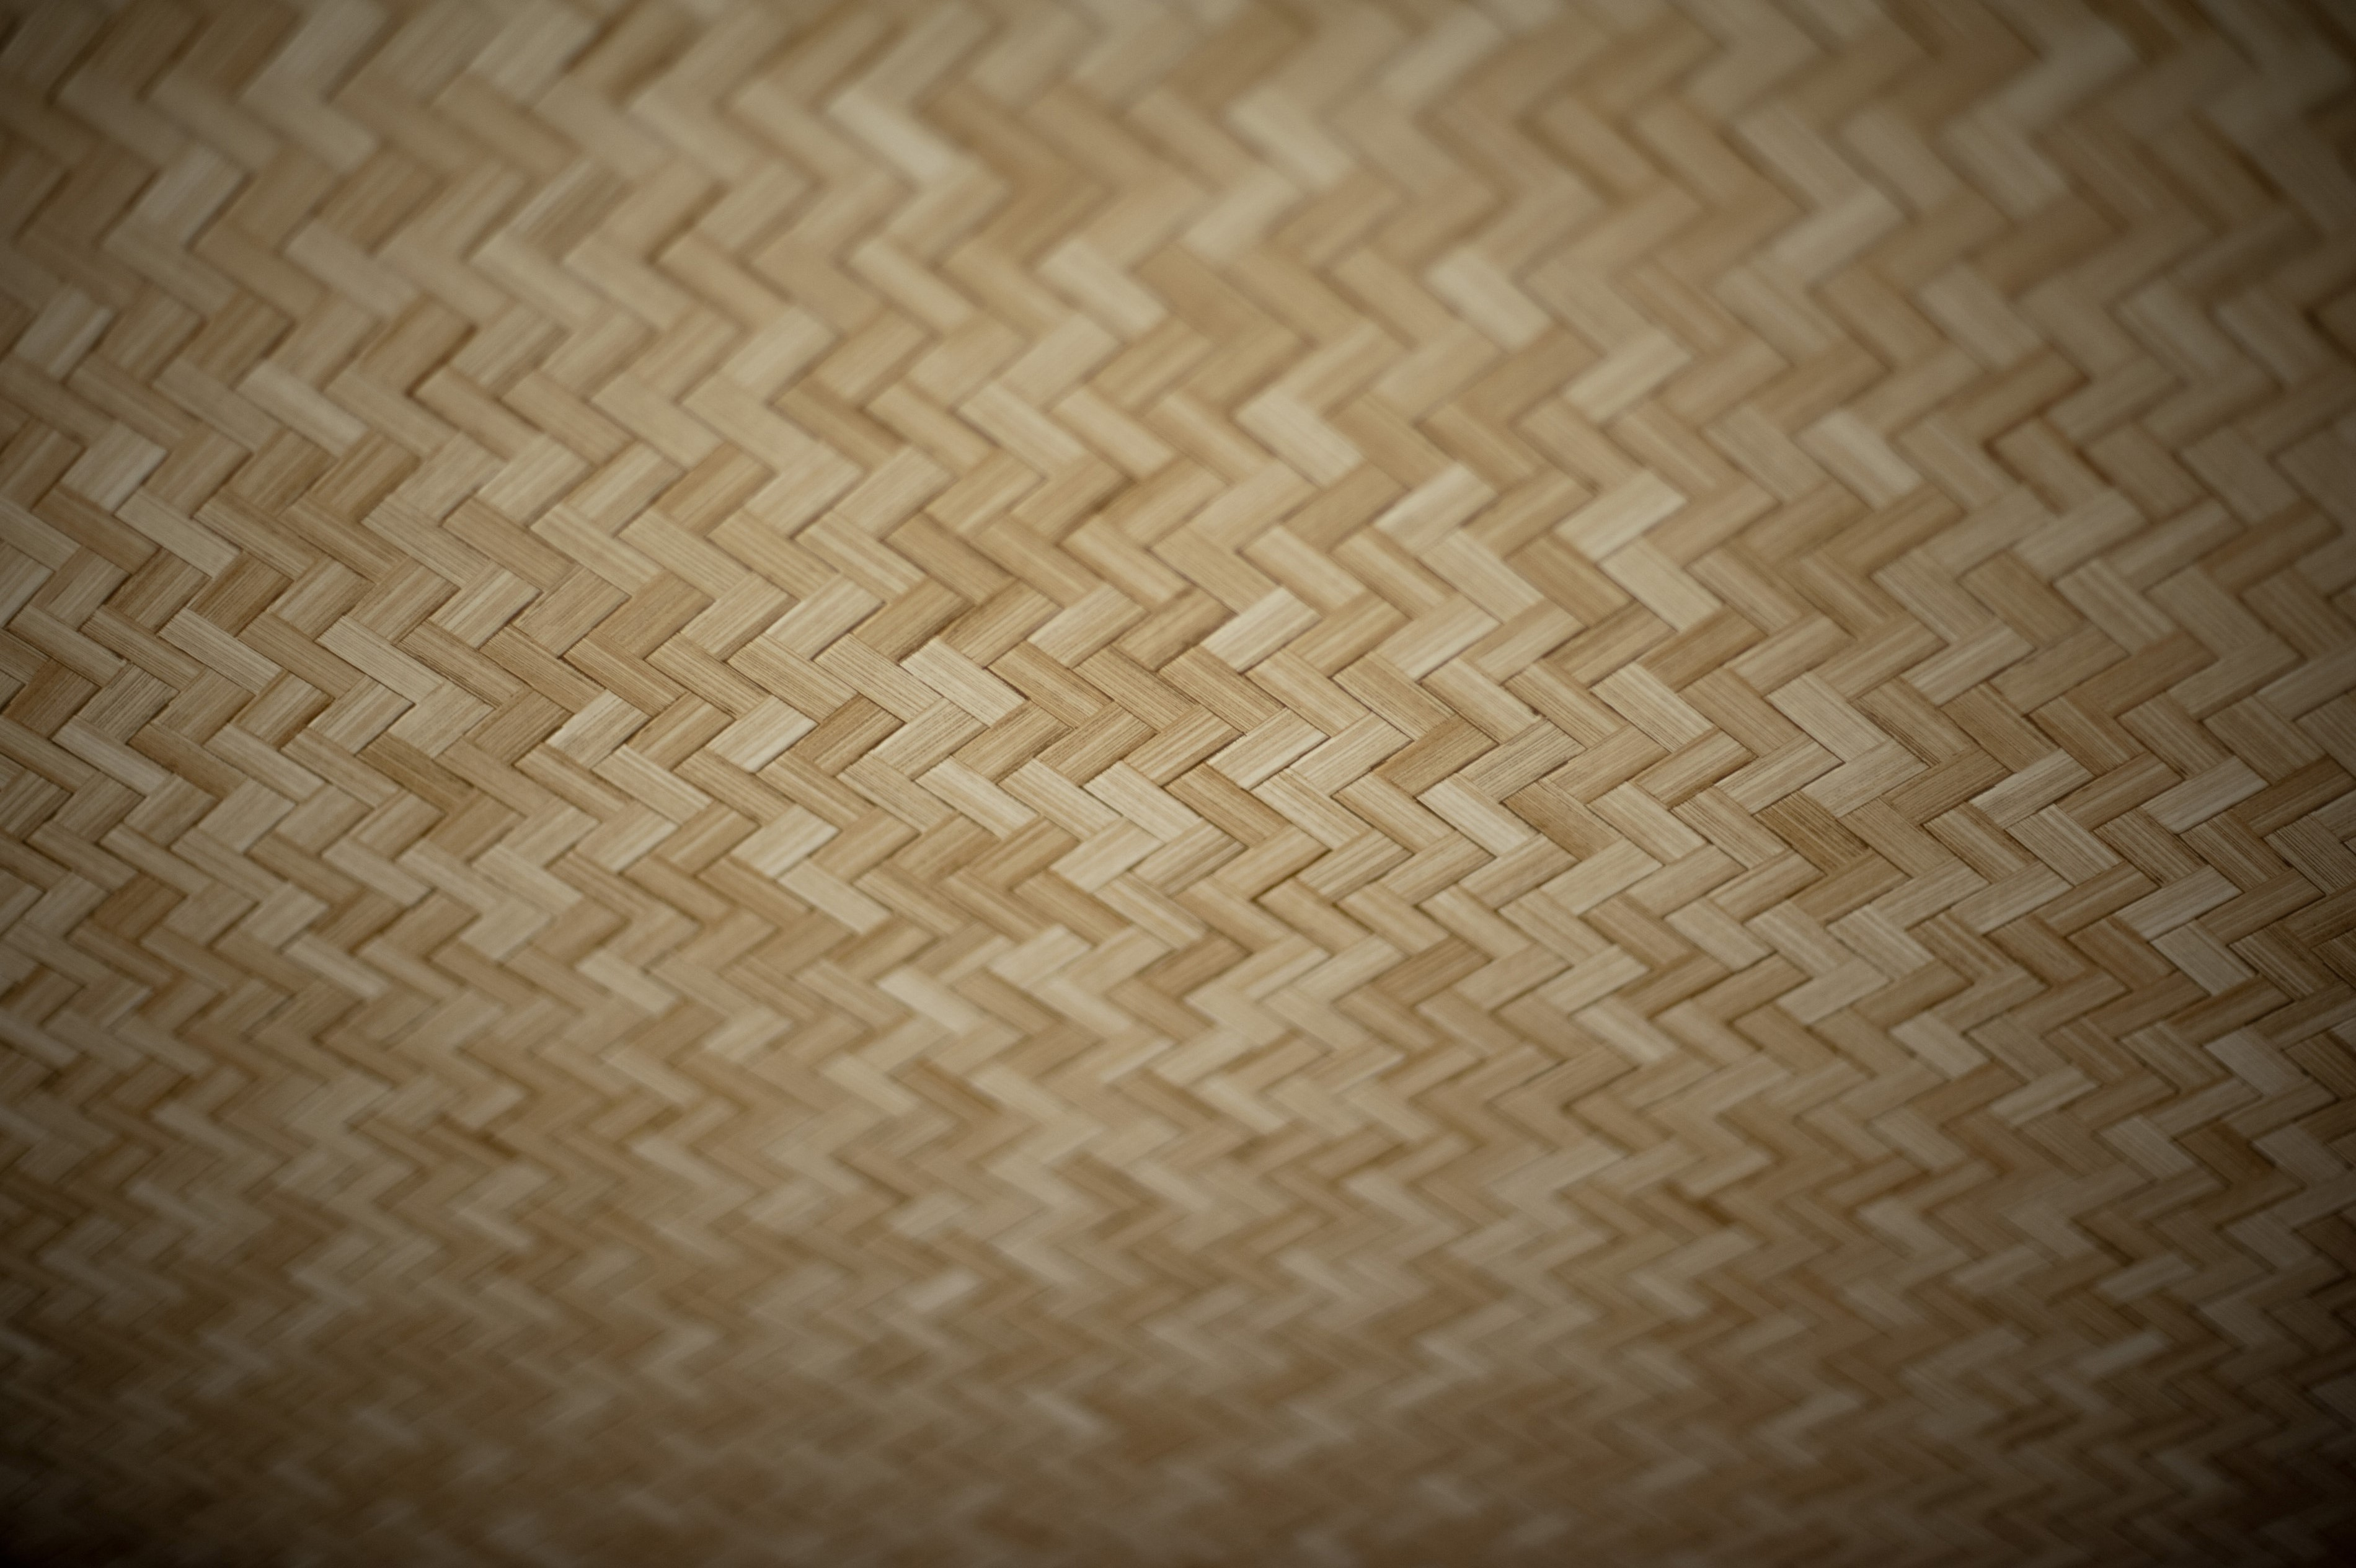 Background texture and repeat zigzag pattern of a woven bamboo ceiling with corner vignetting